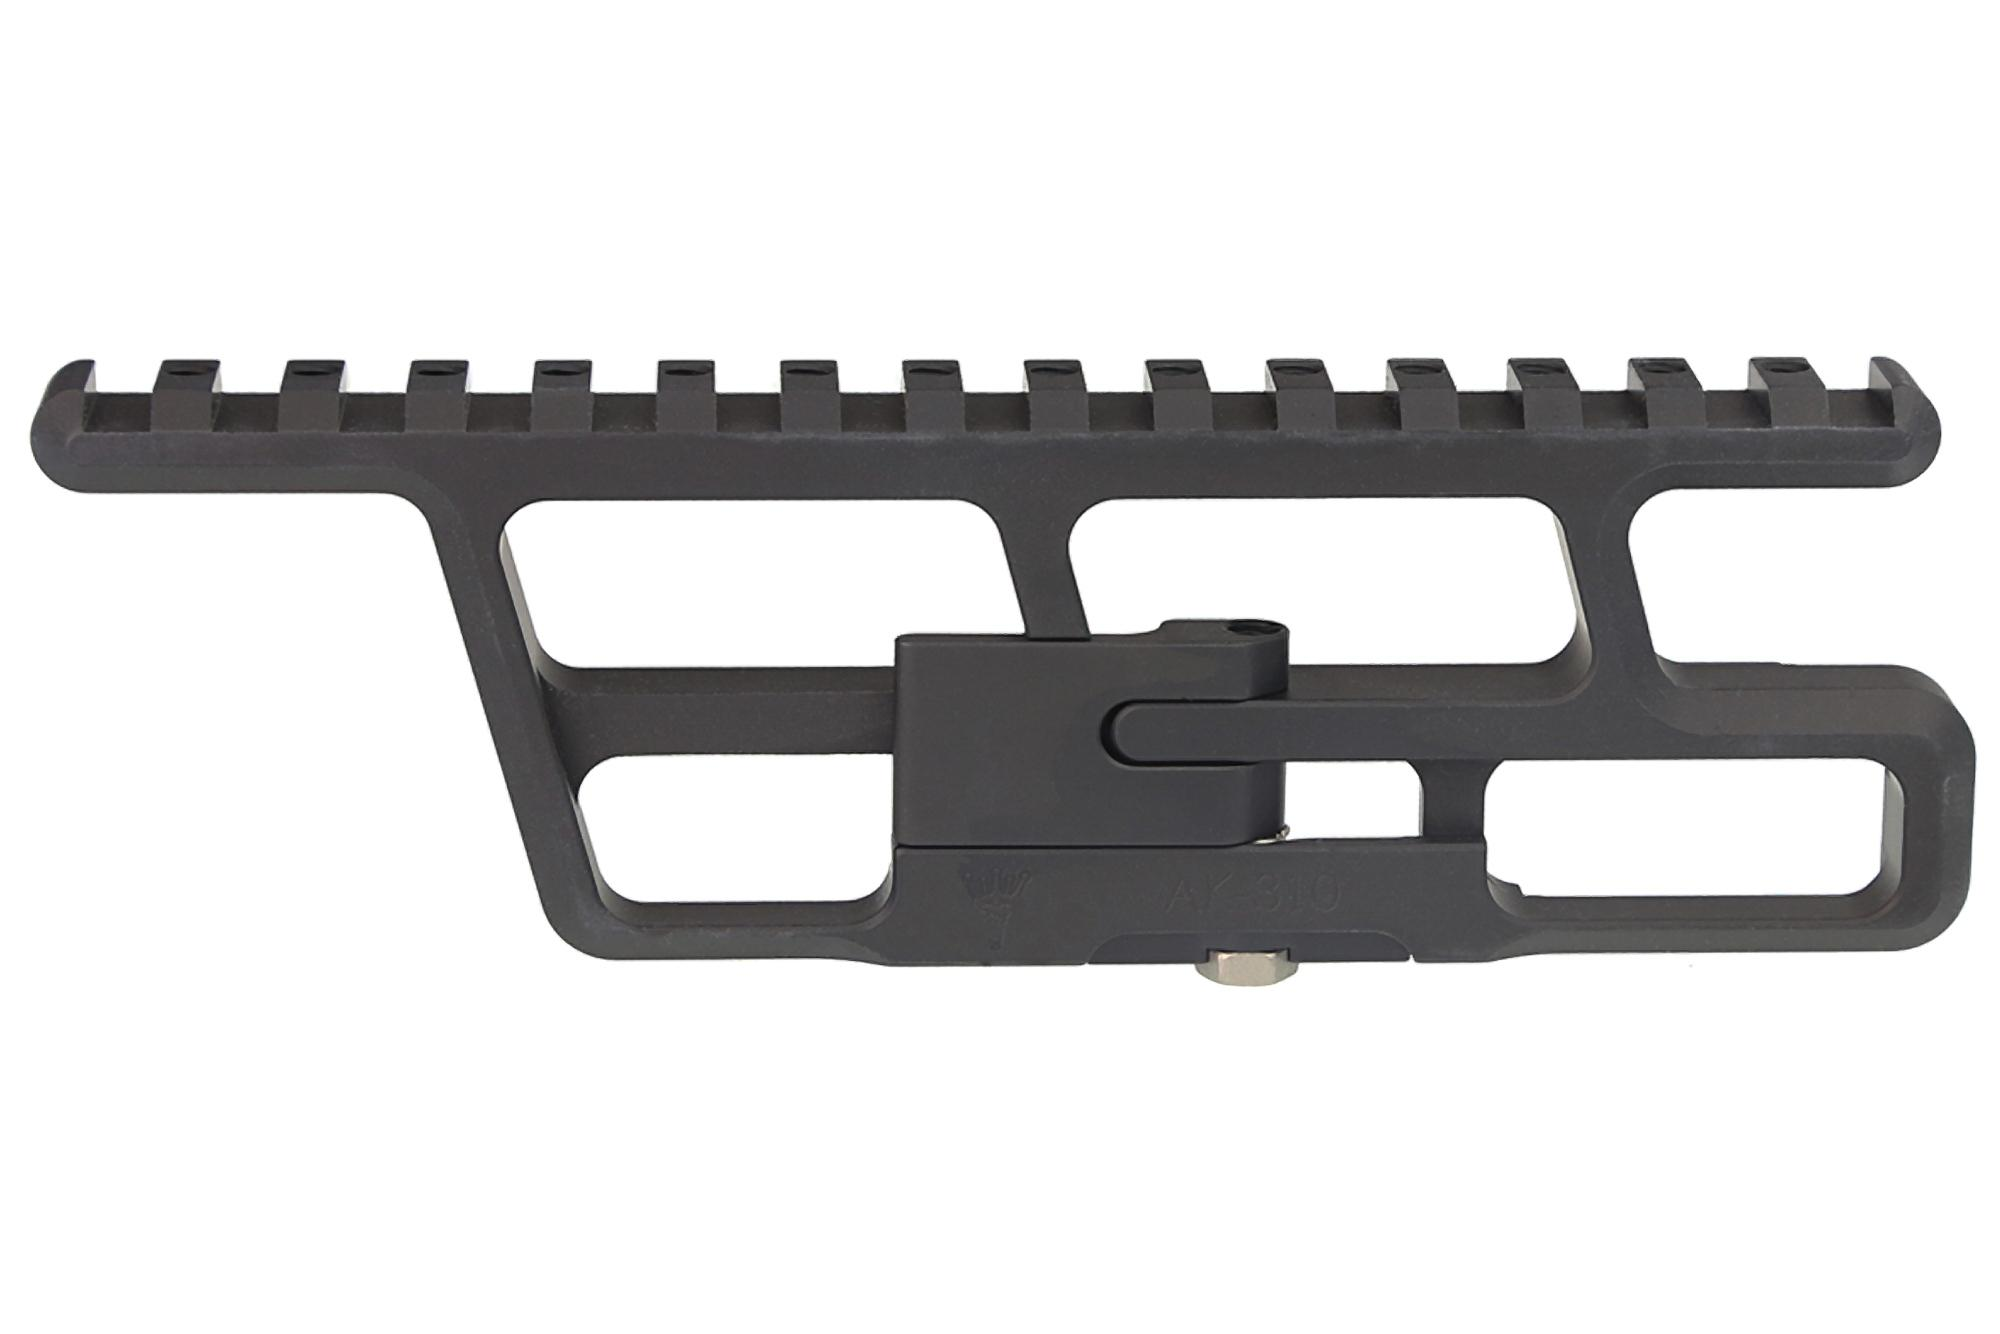 RS Products AK-307M 2nd Gen Full-Length Optic Rail for Yugo AKs